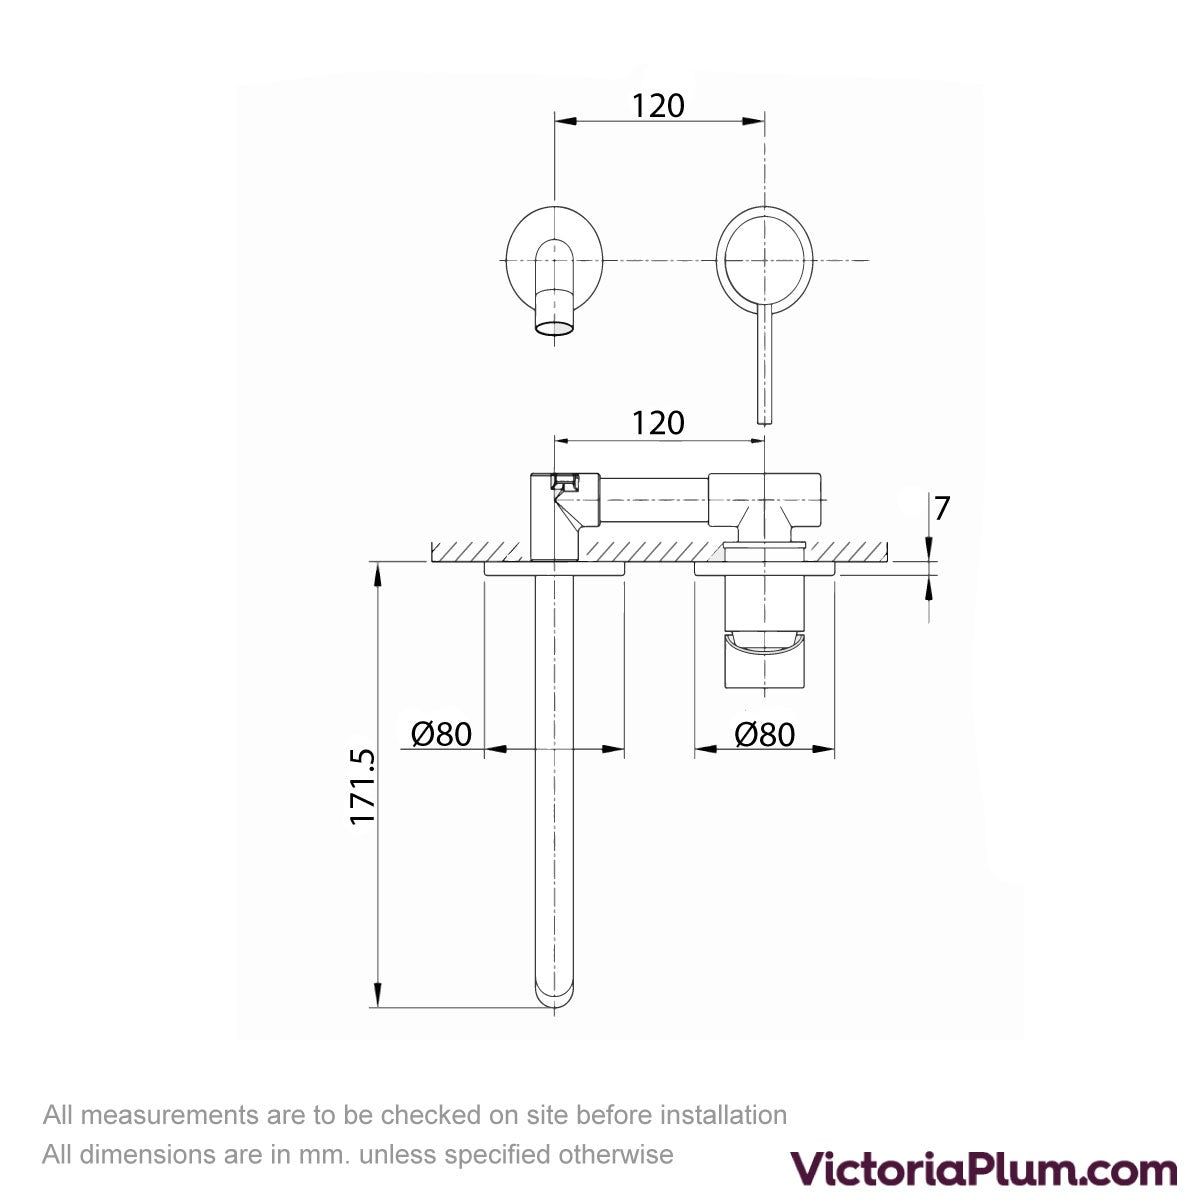 Dimensions for Mode Spencer round wall mounted basin mixer tap